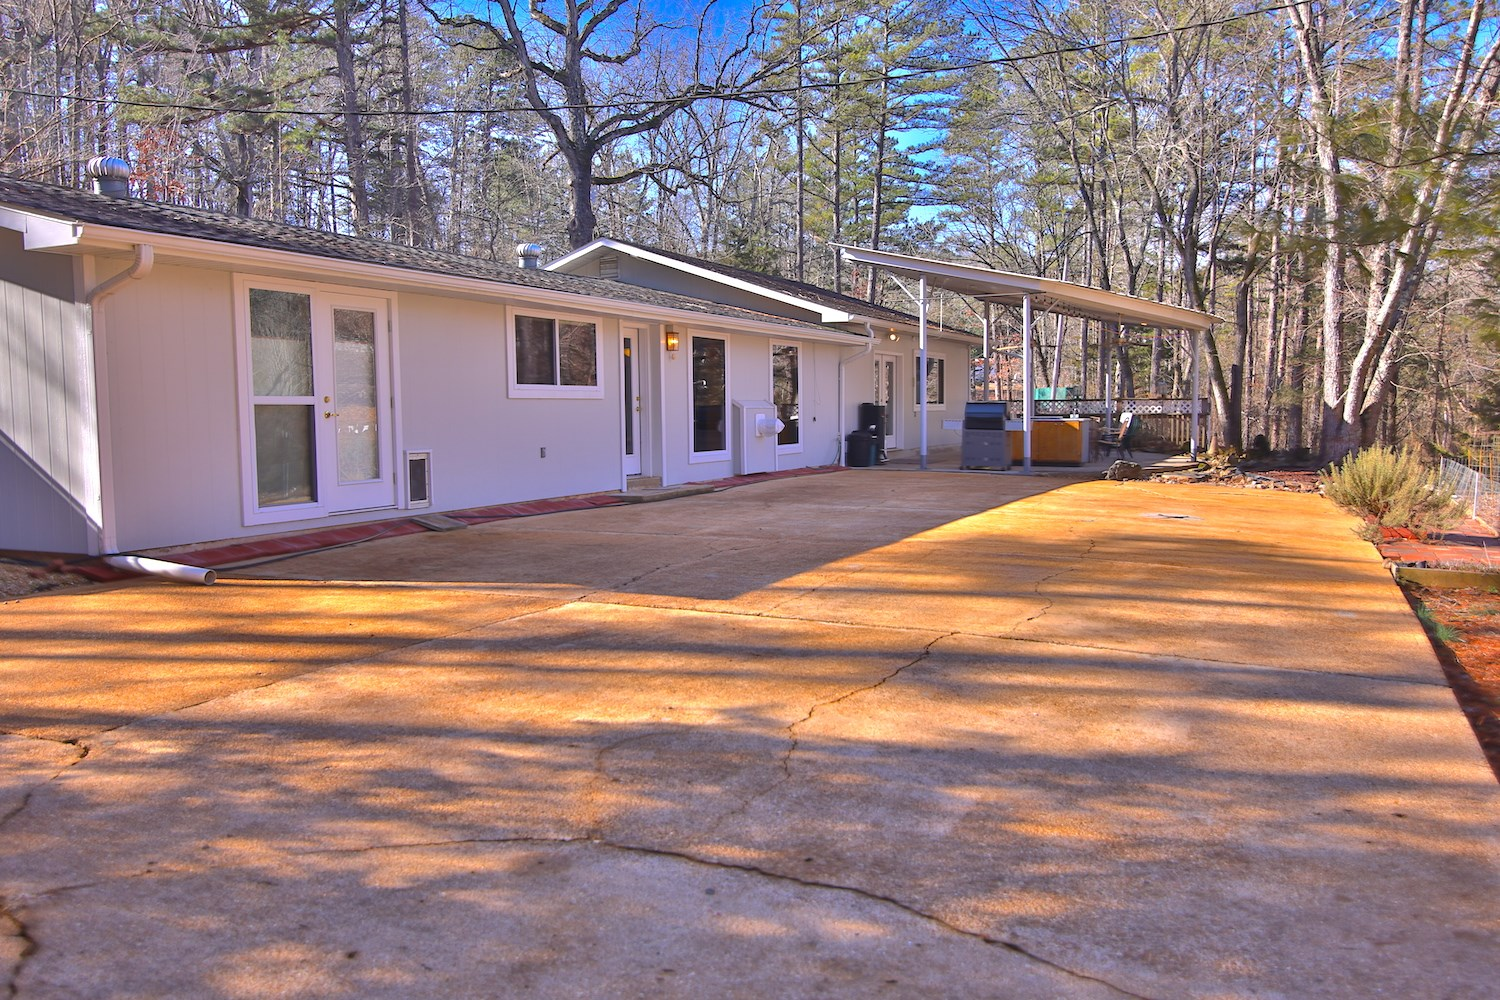 Home with shop for sale in the Ozarks